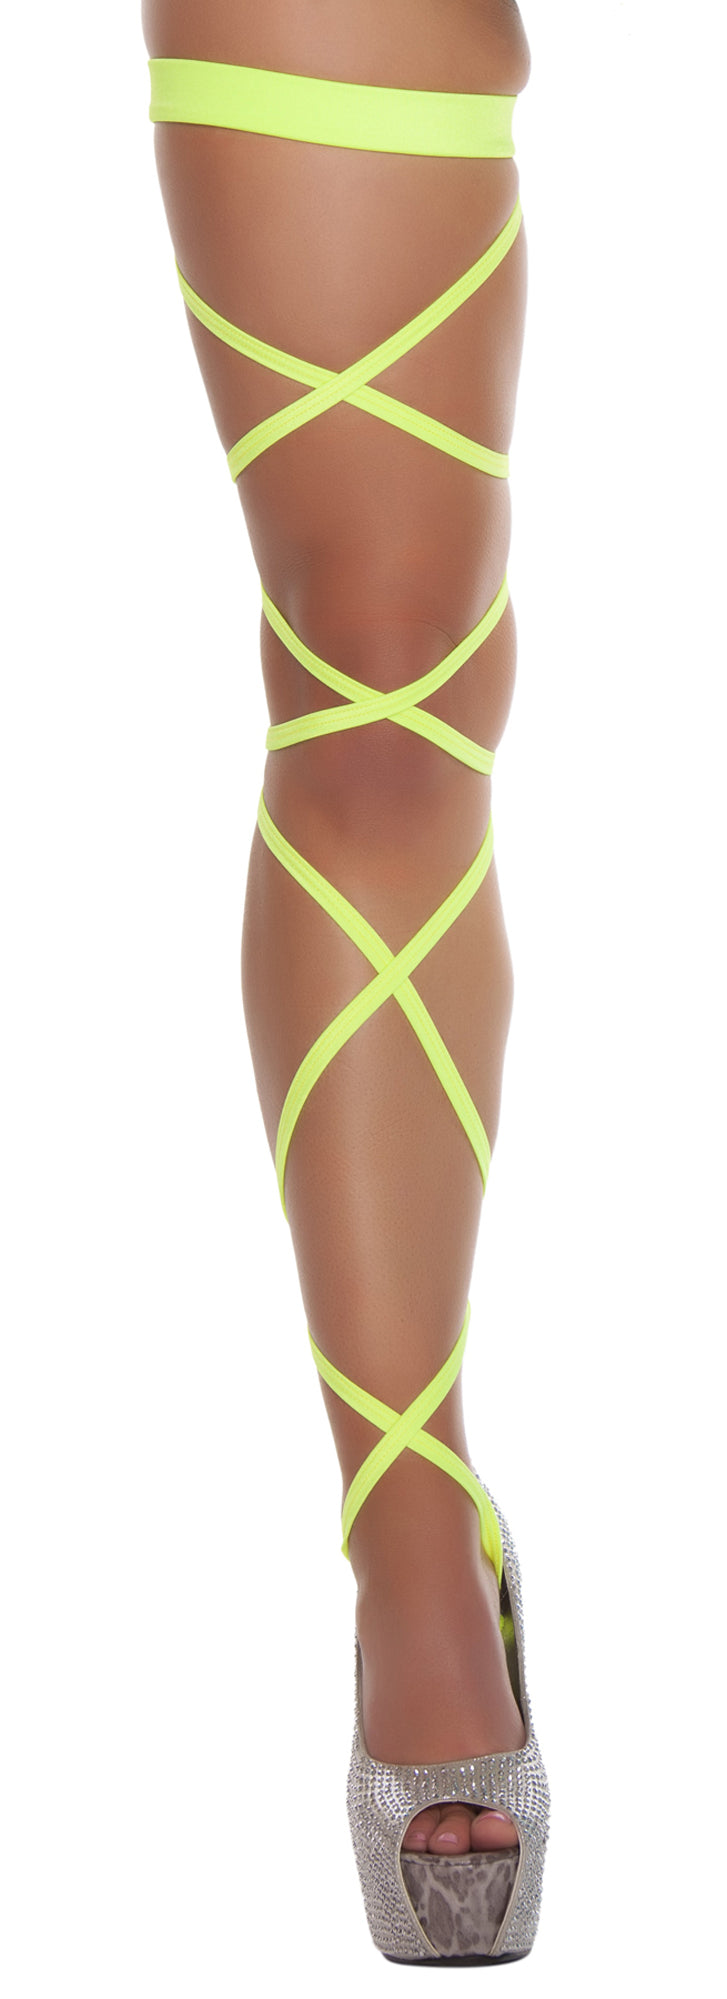 Solid Leg Strap With Attached Garters Yellow RM3231